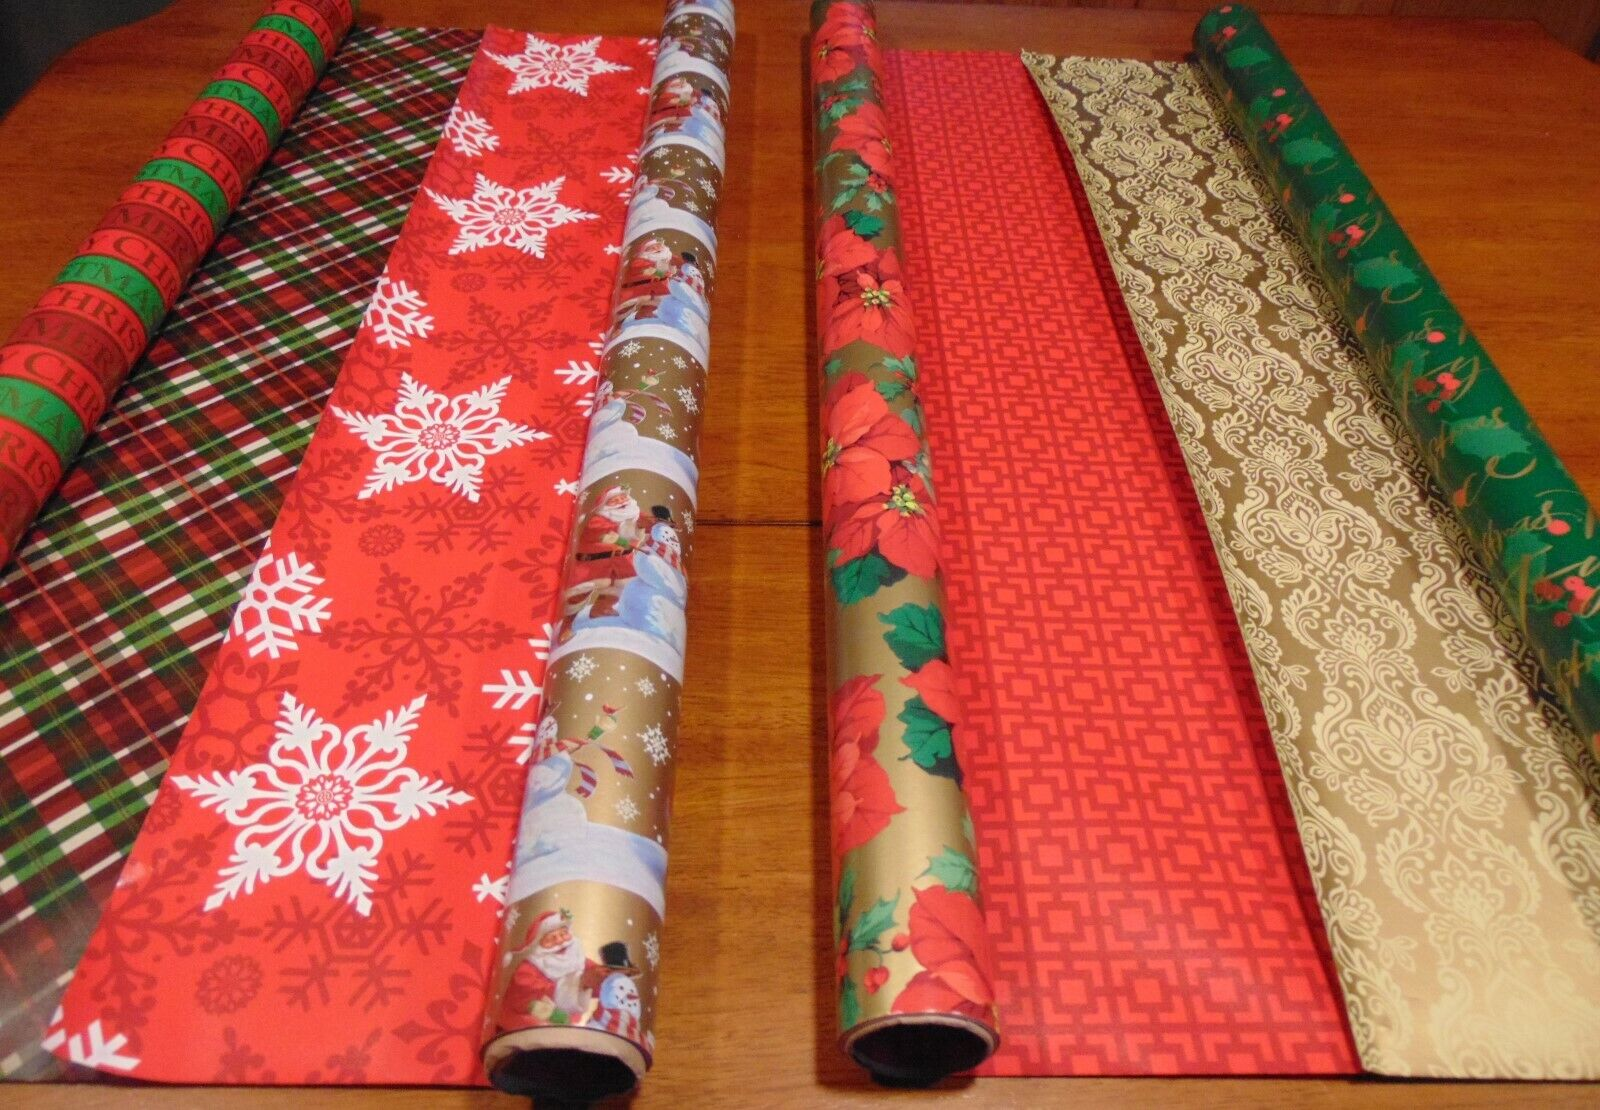 Hallmark Christmas wrapping paper set of 4 rolls double side